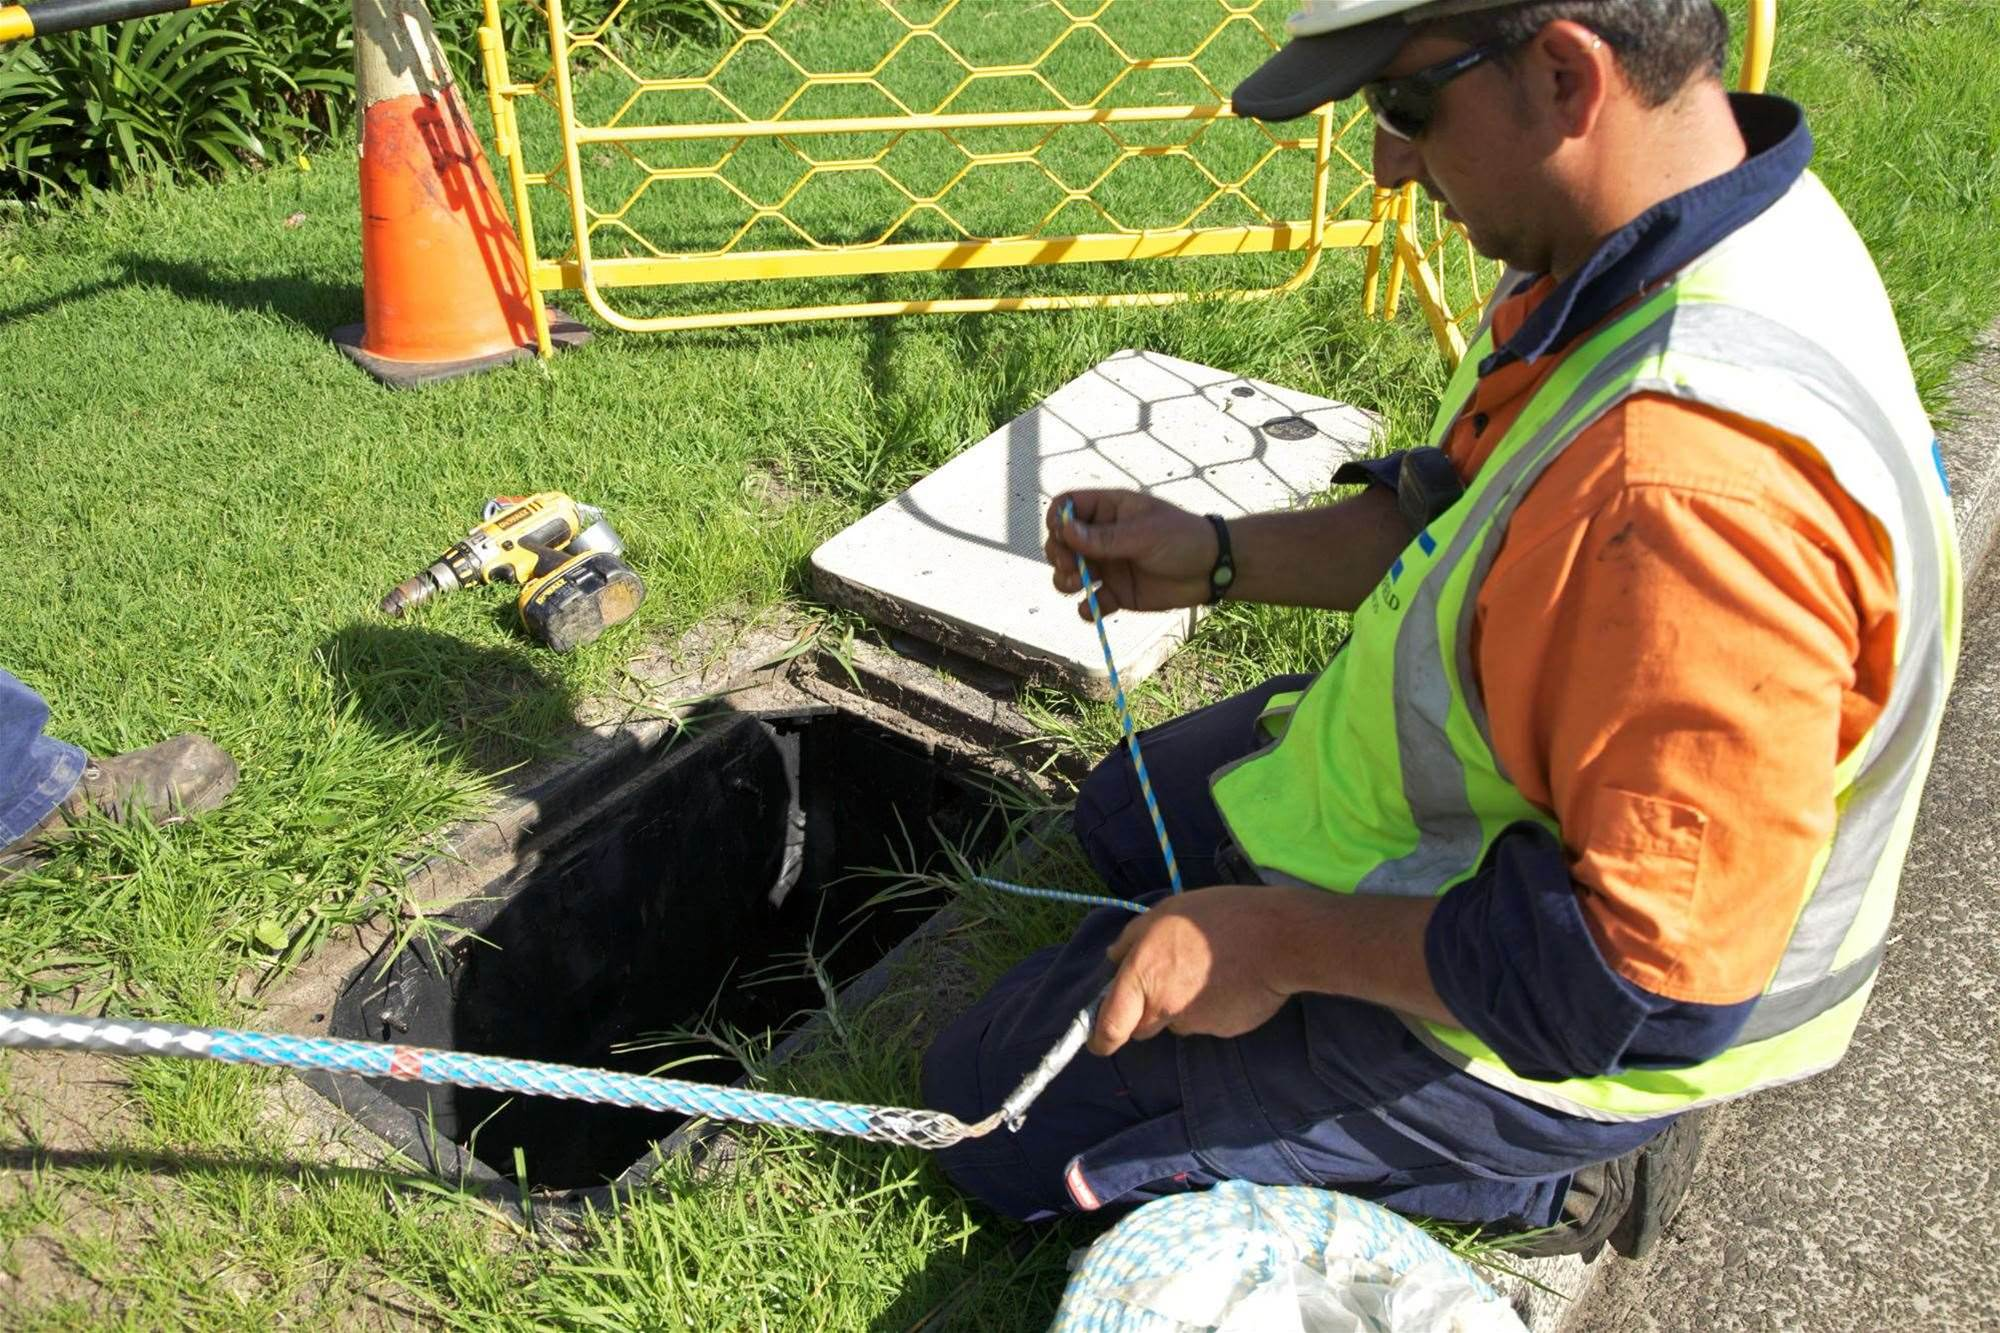 NBN to arrive in Petrie and Ipswich in Queensland